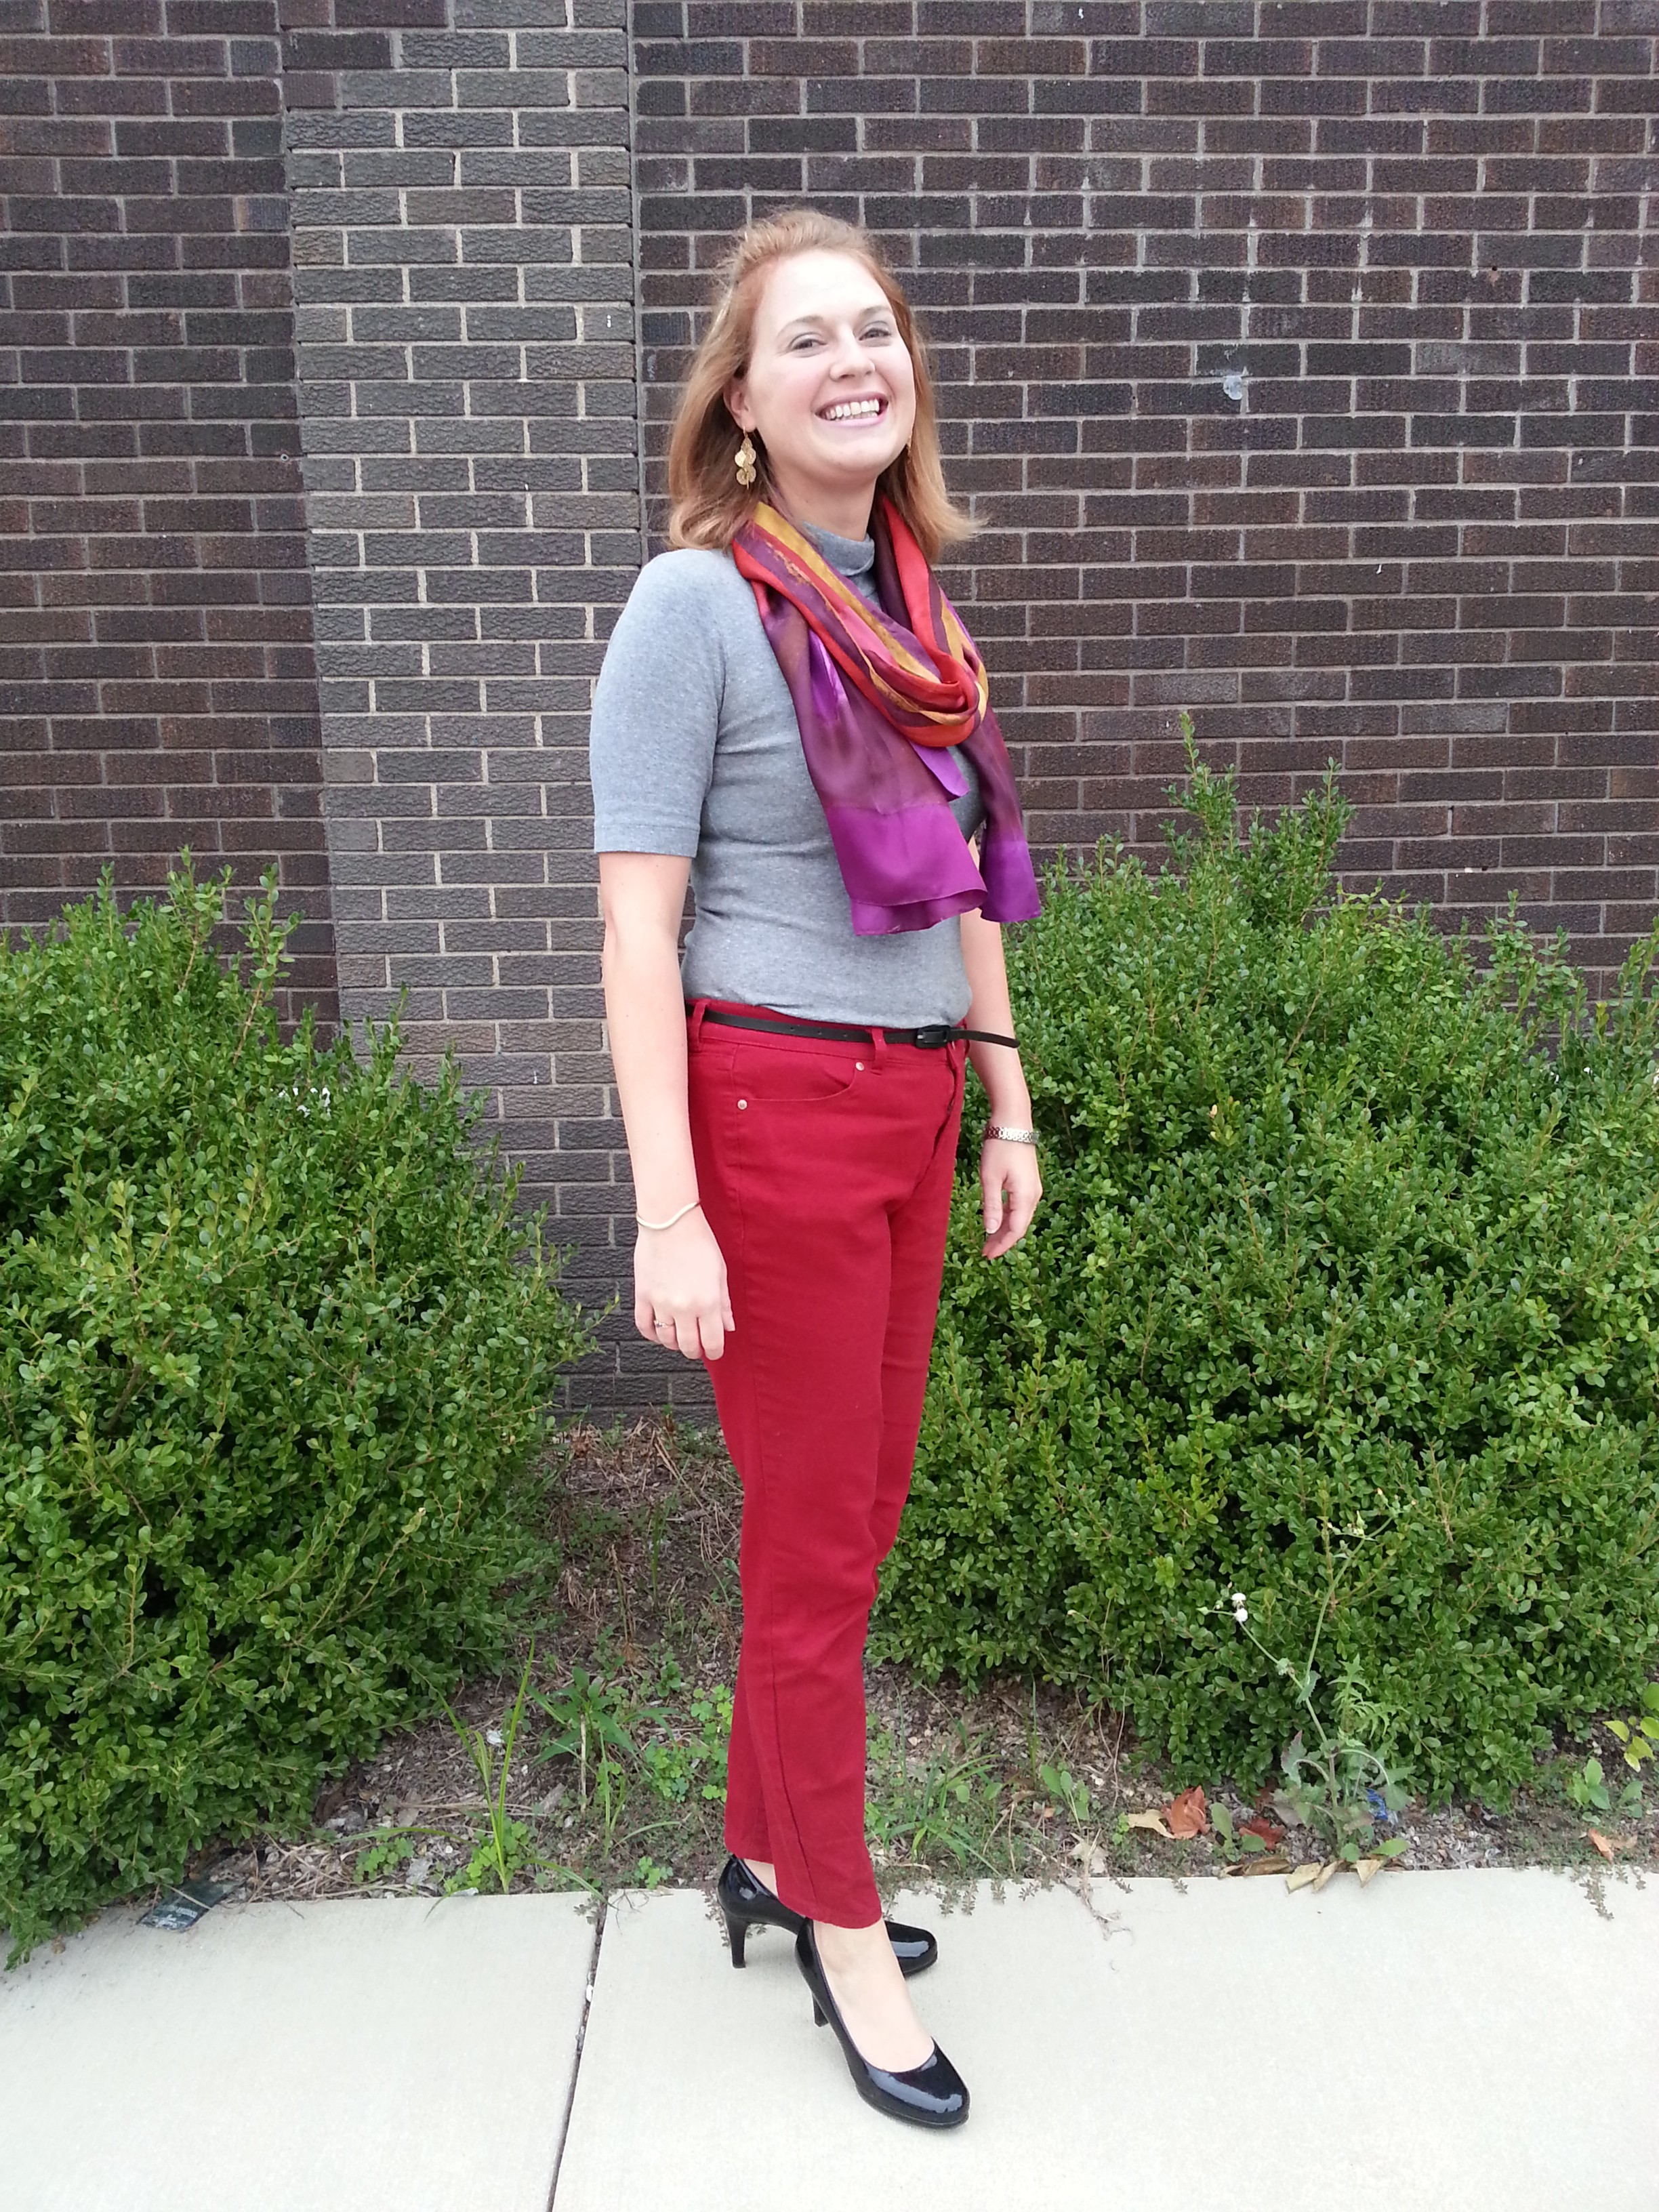 Jessa looks wonderful in her fall inspired outfit!